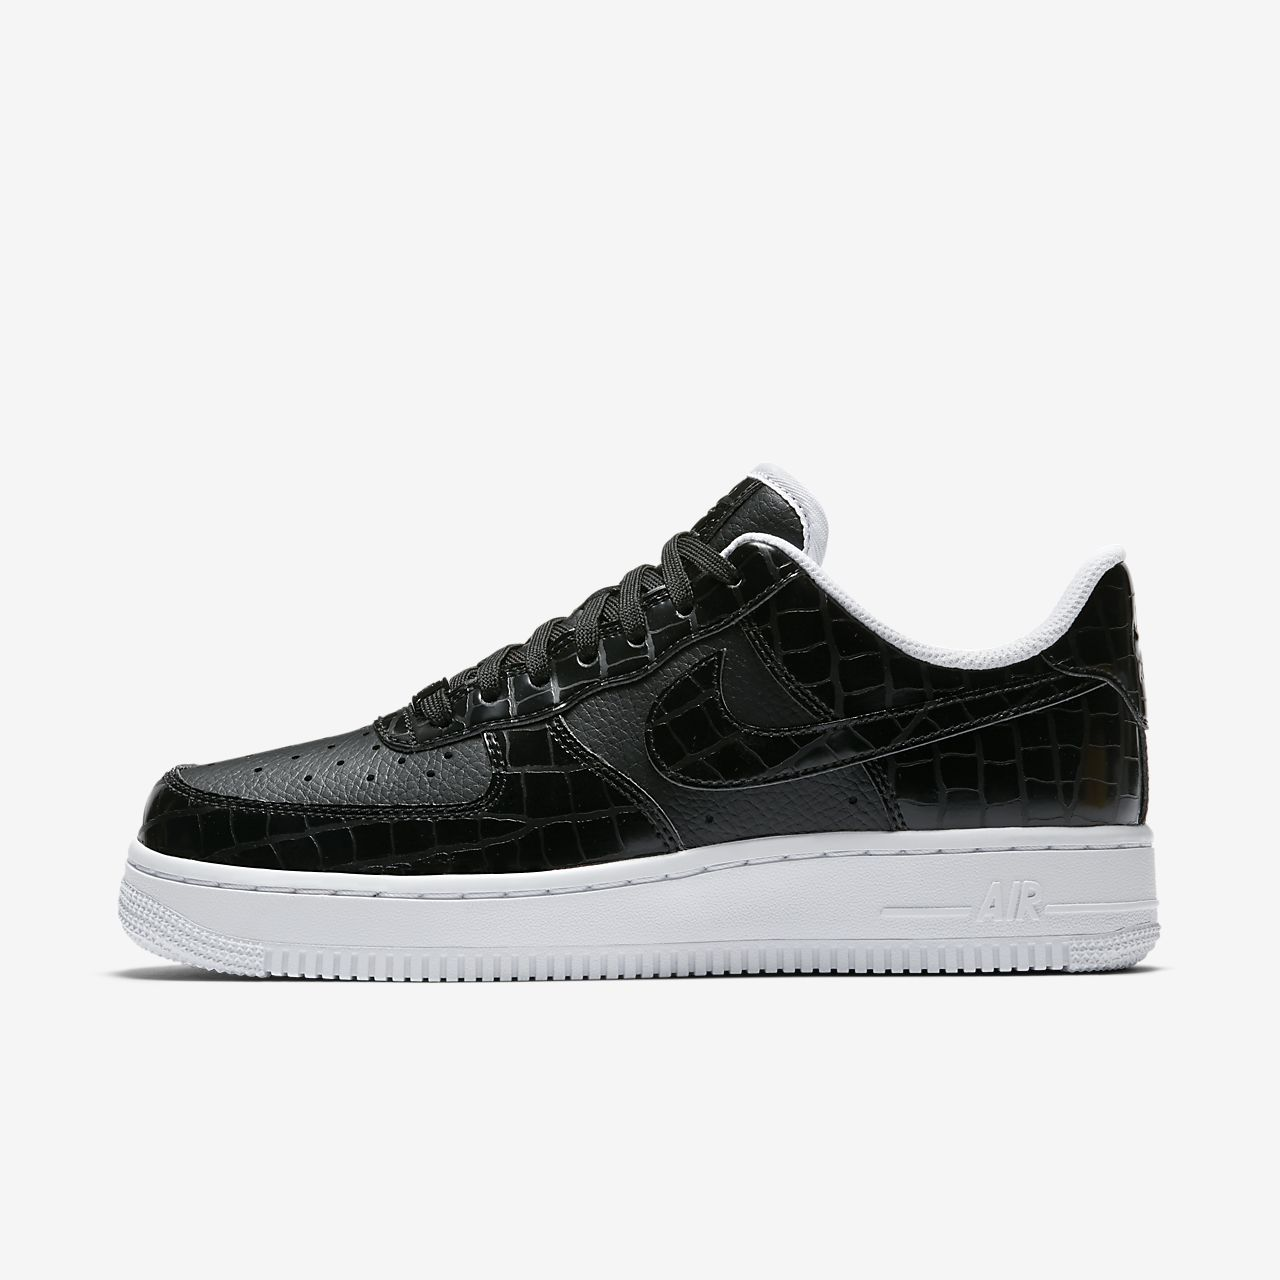 womens nike air force 1 '07 shoes black nz